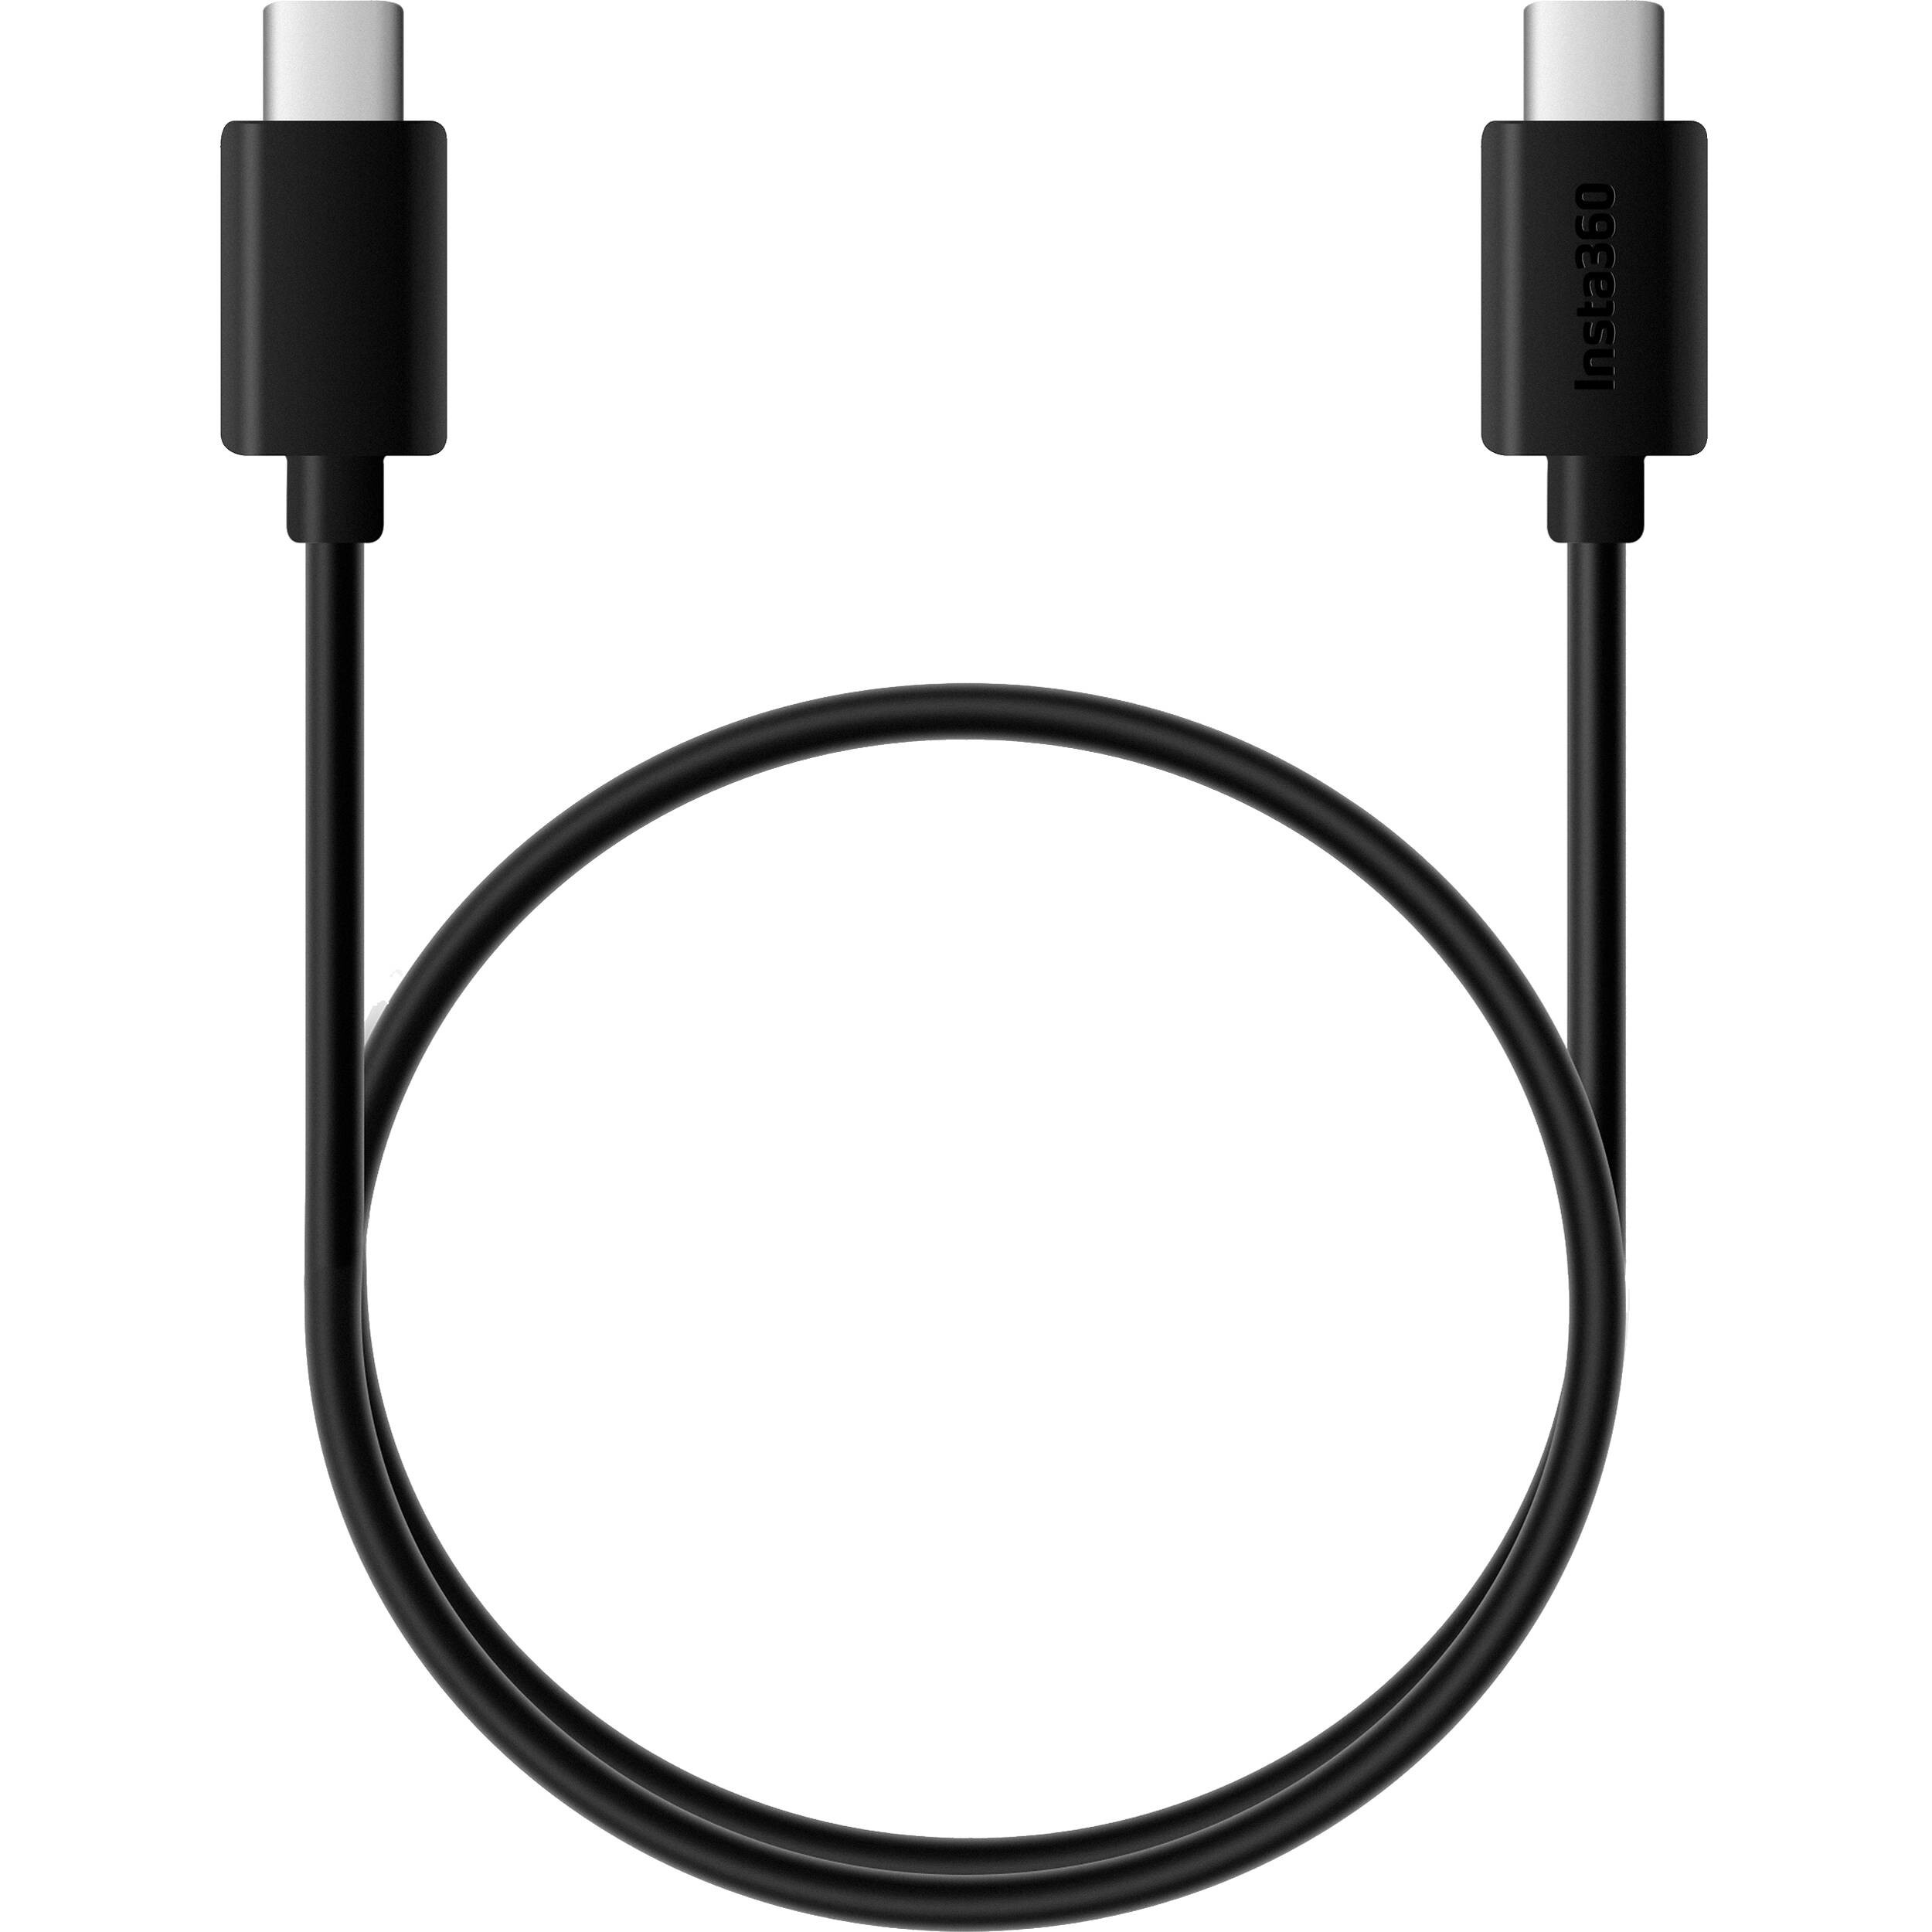 Insta 360 one R Android Link Cable